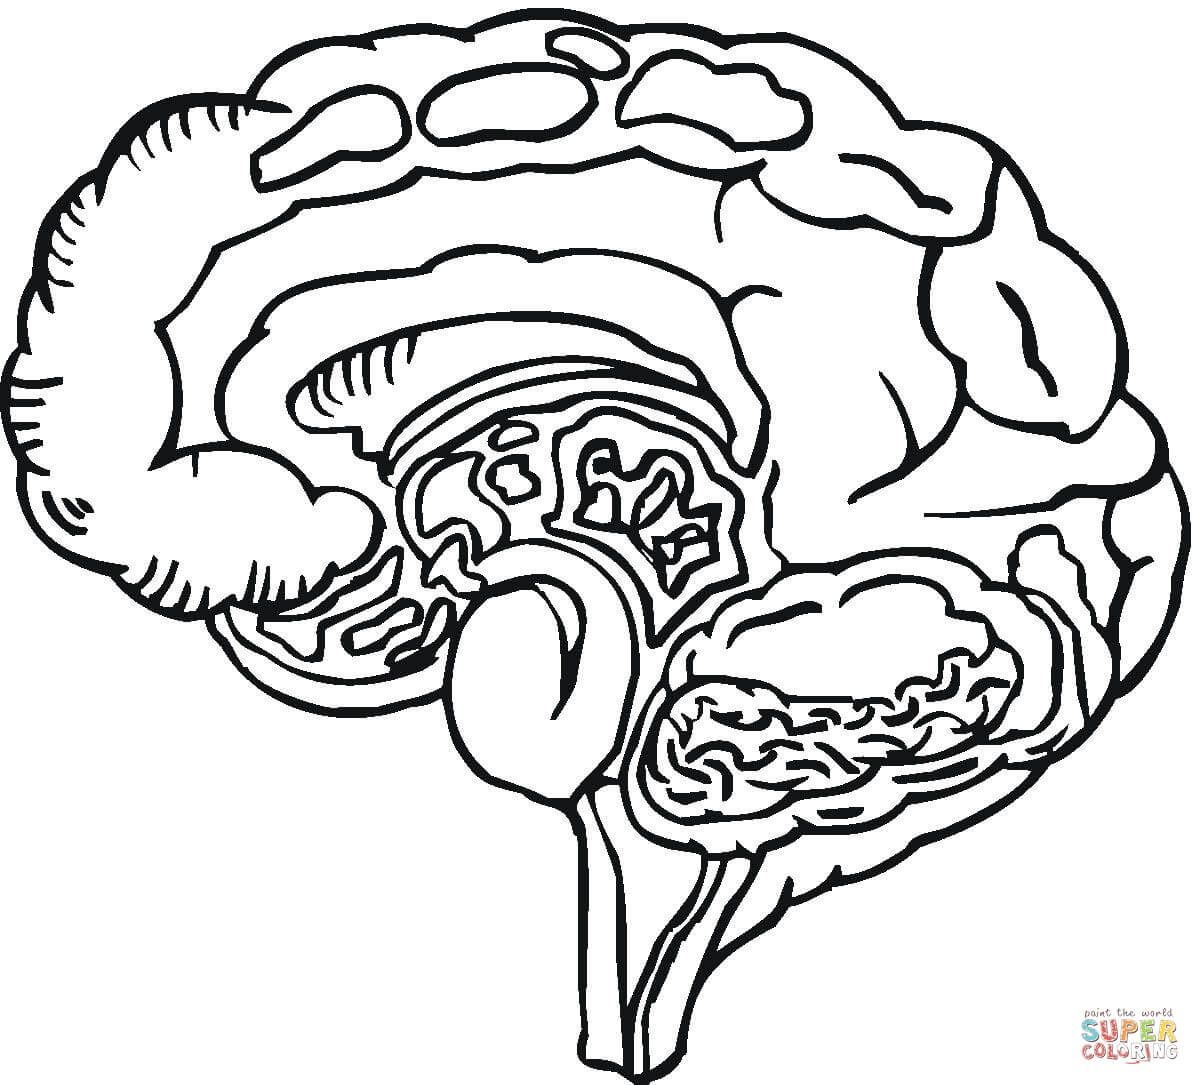 Human Brain Coloring Page Coloring Home Super Coloring Pages Animal Coloring Books Human Heart Drawing [ 1085 x 1200 Pixel ]